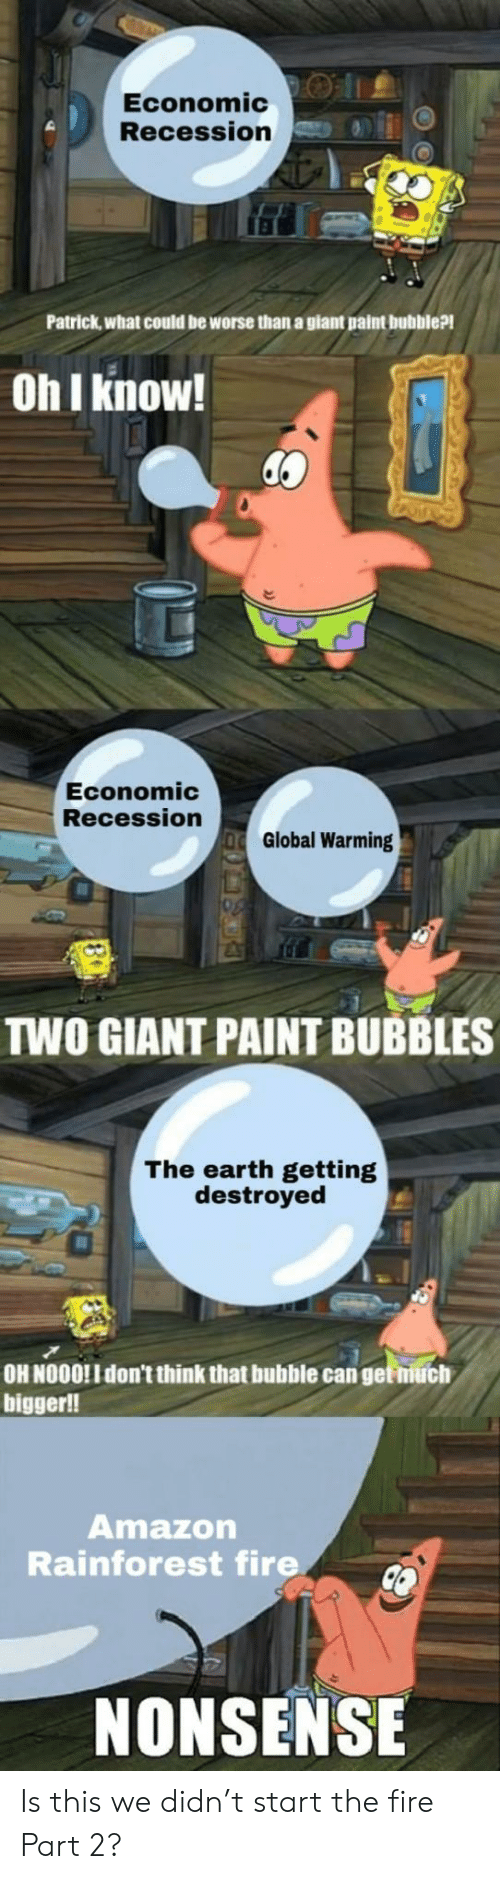 economic: Economic:O |1.  Recession  Patrick,what could be worse than a giant paint bubble?!  Oh I know!  Economic  Recession  Global Warming  TWO GIANT PAINT BUBBLES  The earth getting  destroyed  OH NOOO!I don't think that bubble can get niuch  bigger!!  Amazon  Rainforest fire  NONSENSE Is this we didn't start the fire Part 2?